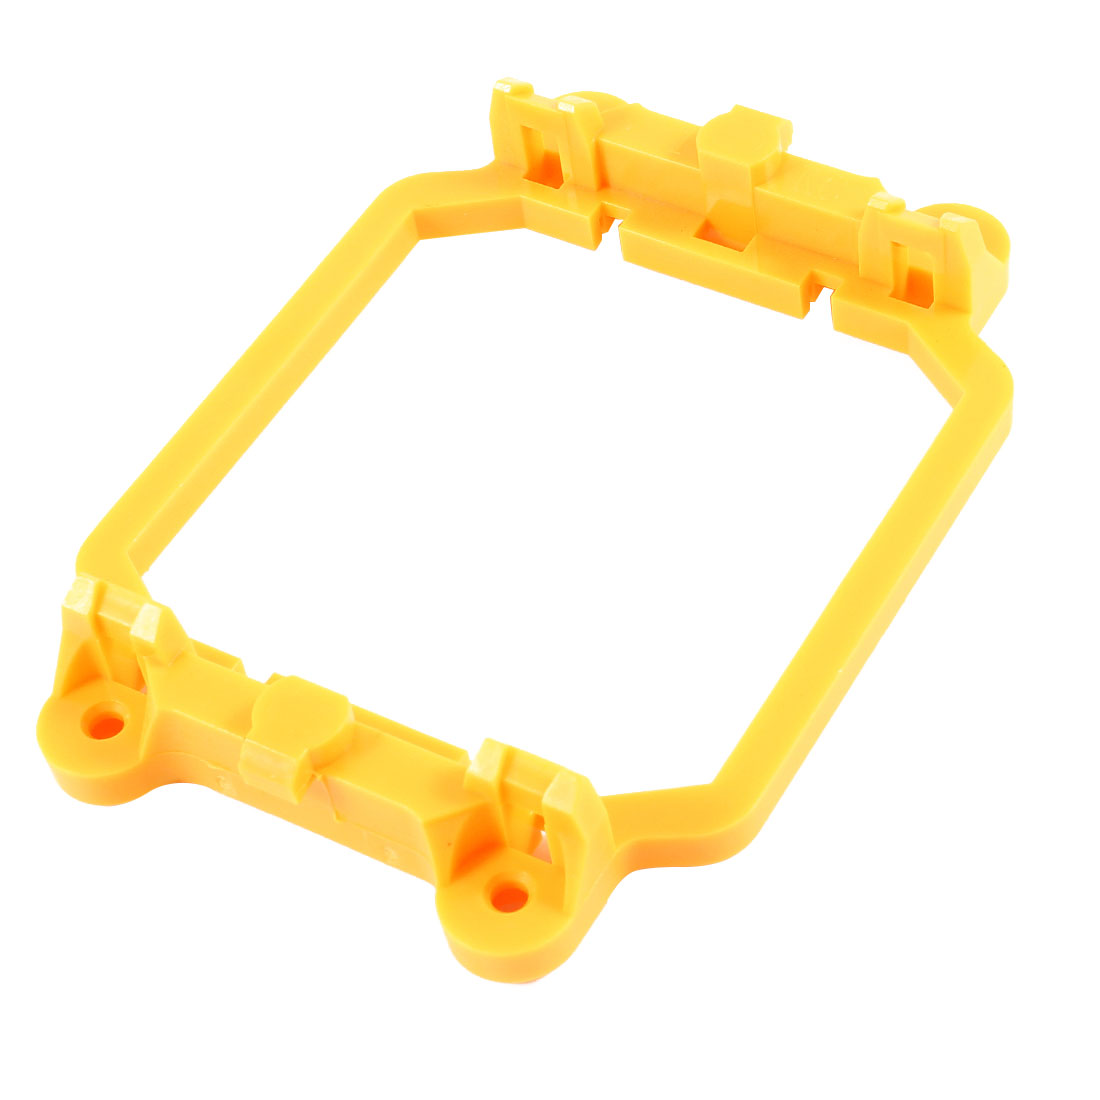 Yellow Fan Retainer Bracket Stand for AMD AM2 AM3 Socket PC Computer